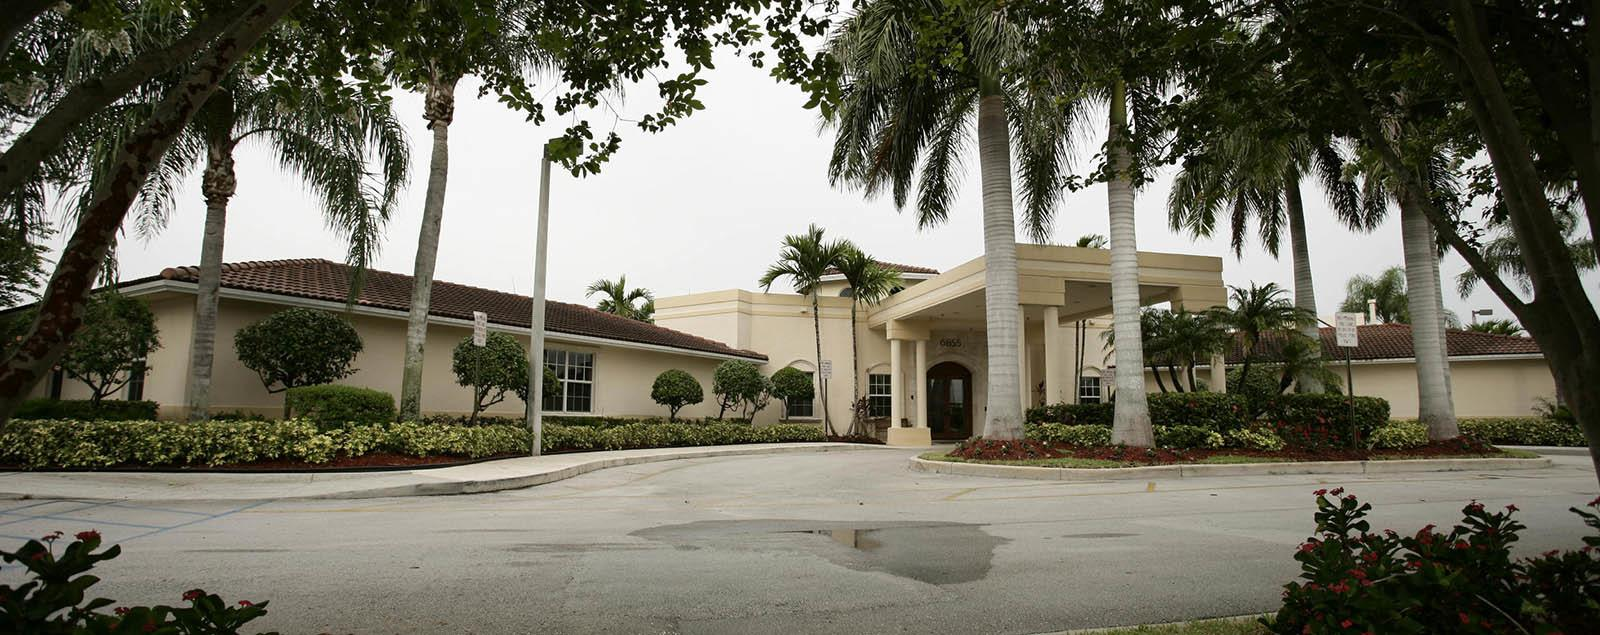 Map & directions to senior living in Tamarac